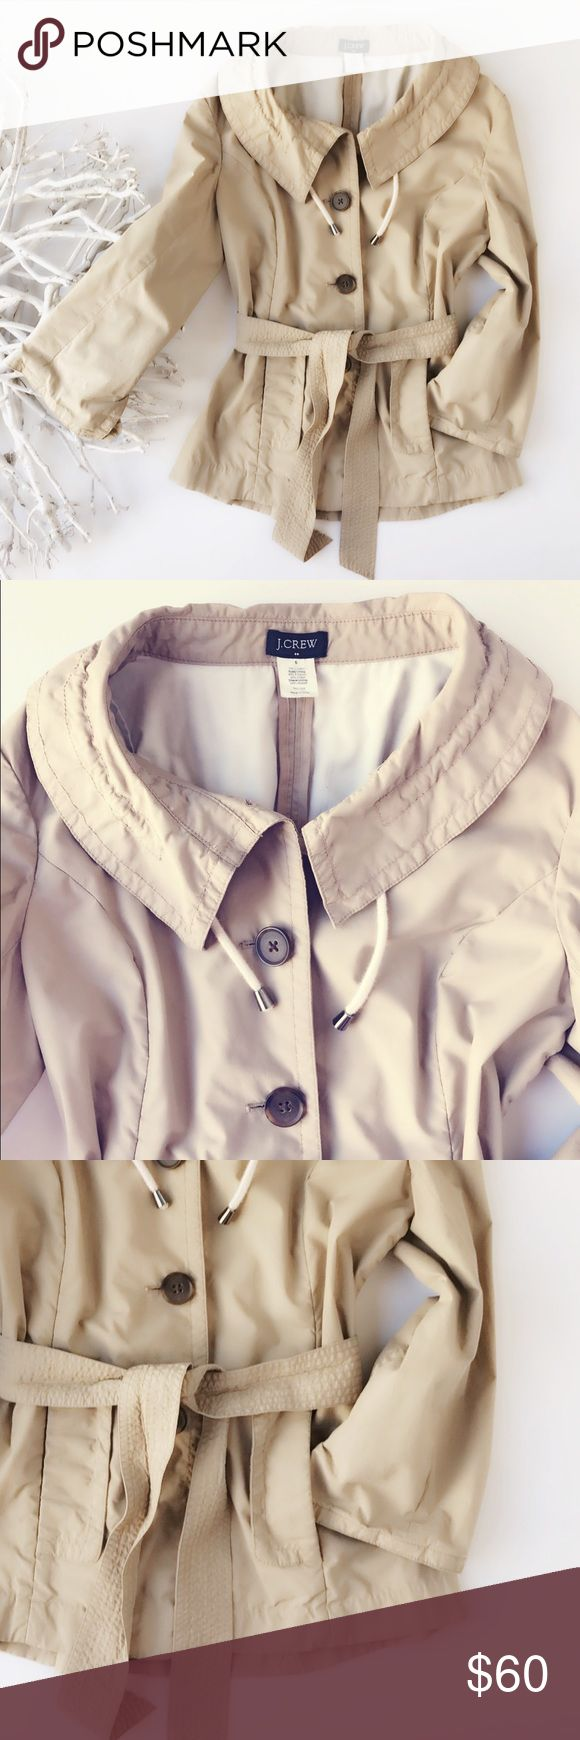 """J Crew utility field jacket womens size 6 SOLD OUT Like new. Flawless. SOLD OUT! J Crew women's utility field jacket. Drawstring collar and belted waist. Intriguing sleeve details. Armpit to armpit: 36"""" center back collar to hem 25"""" J. Crew Jackets & Coats Utility Jackets"""